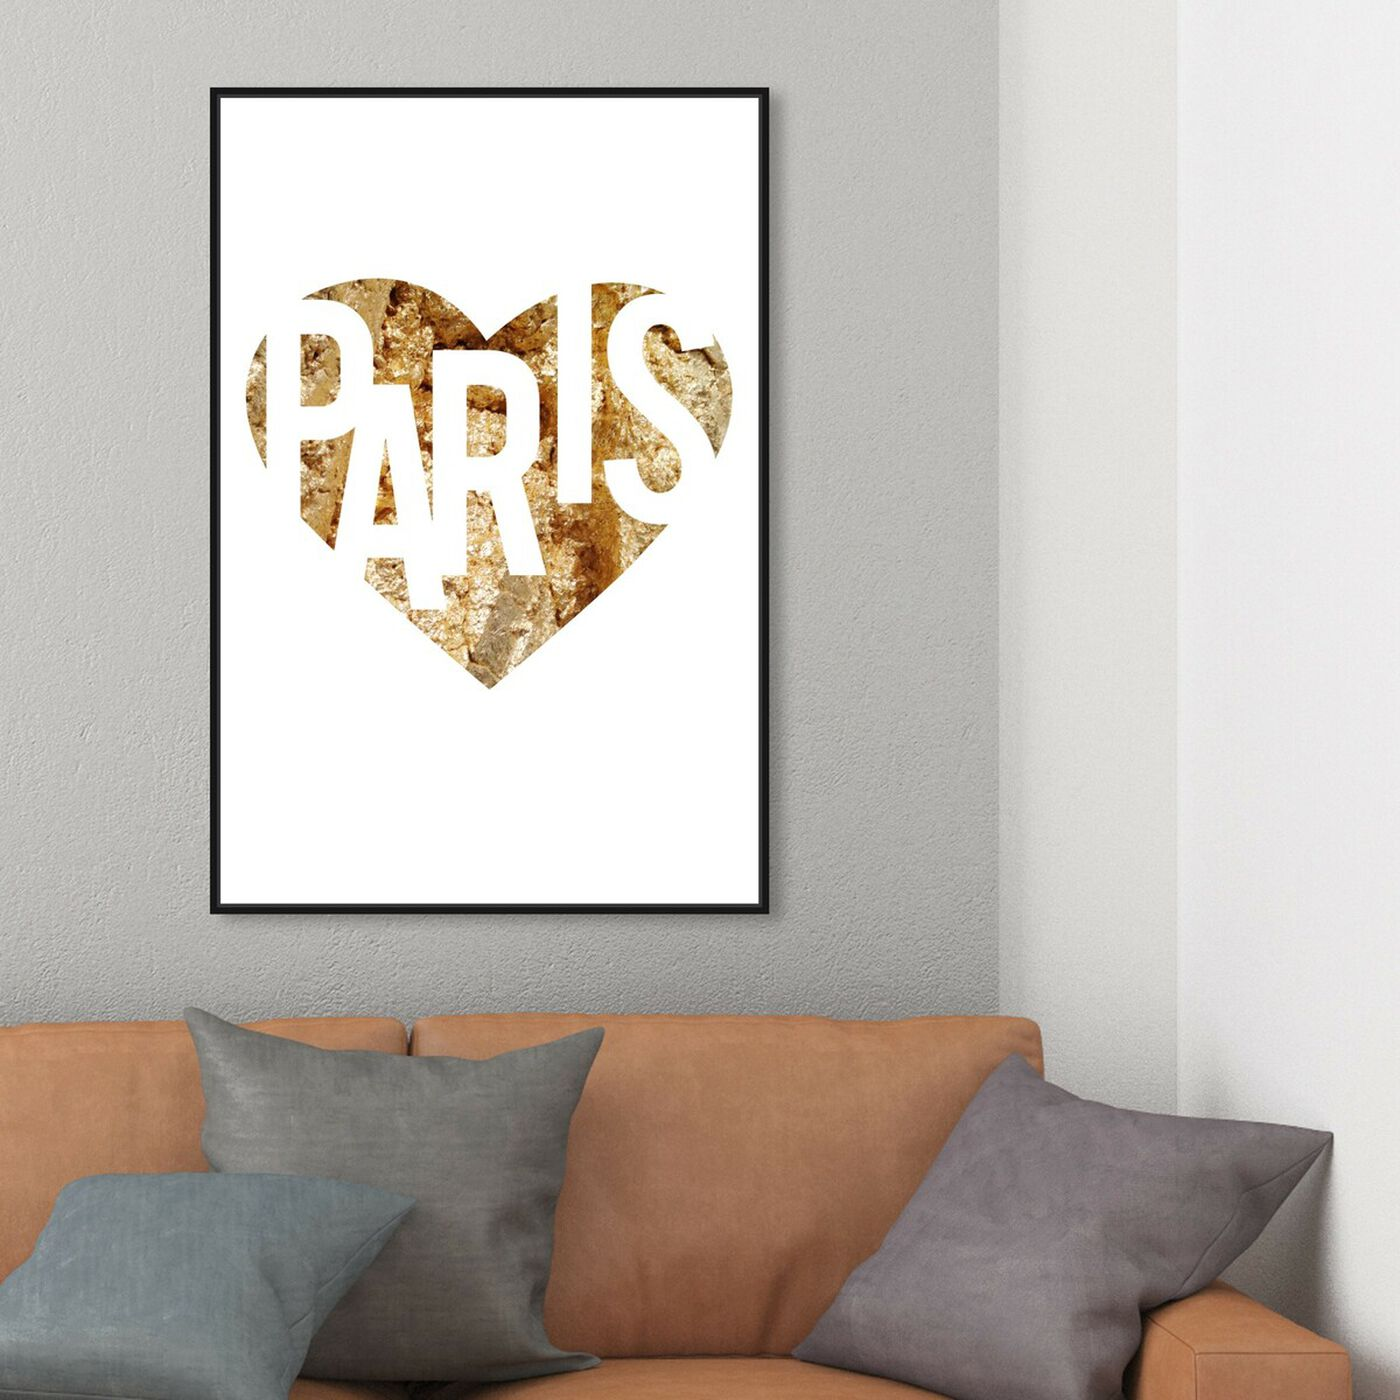 Hanging view of I Love Paris Gold featuring fashion and glam and hearts art.